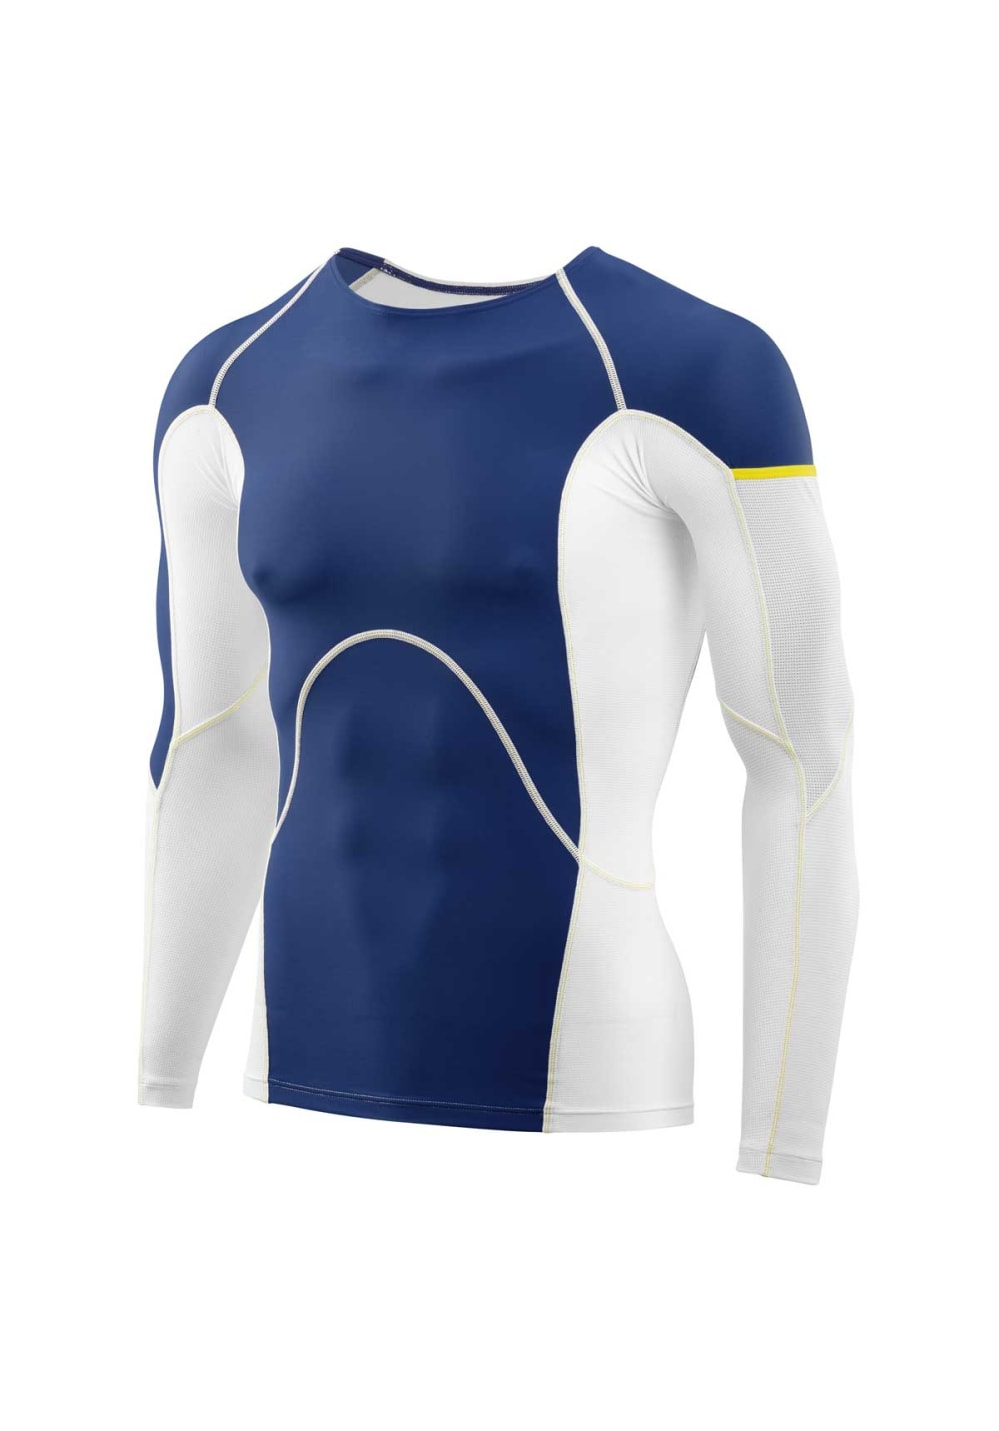 Skins Dnamic Ultimate Cooling Long Sleeve Top - Laufshirts für Herren - Blau, G